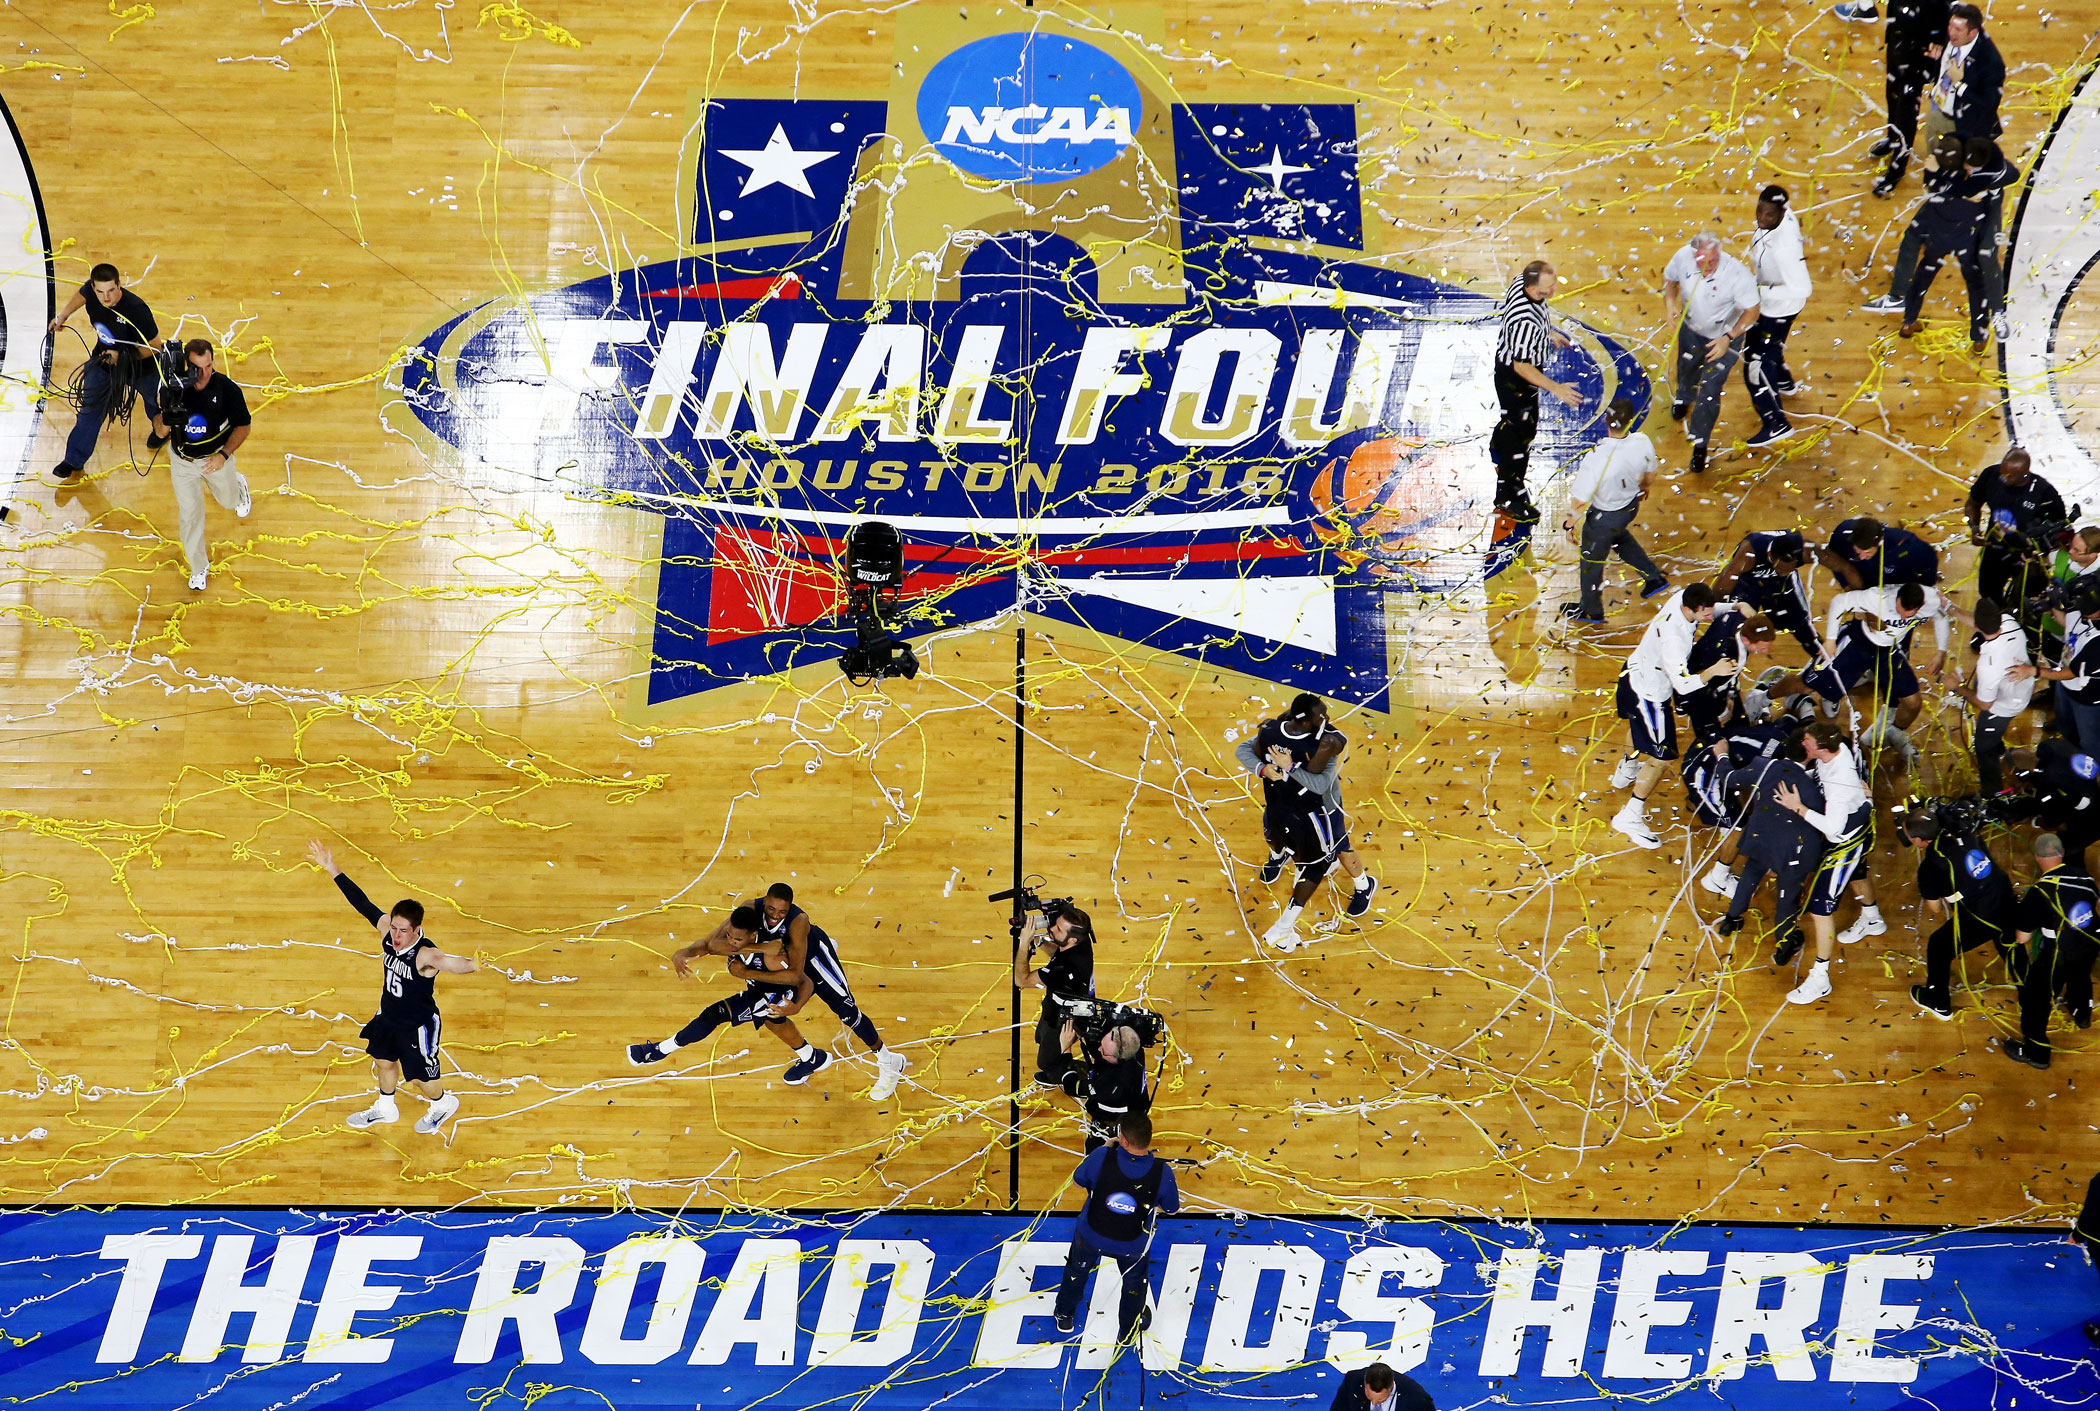 The Villanova Wildcats celebrate defeating the North Carolina Tar Heels 77-74 to win the 2016 NCAA college basketball National Championship  game on April 4, 2016 in Houston.